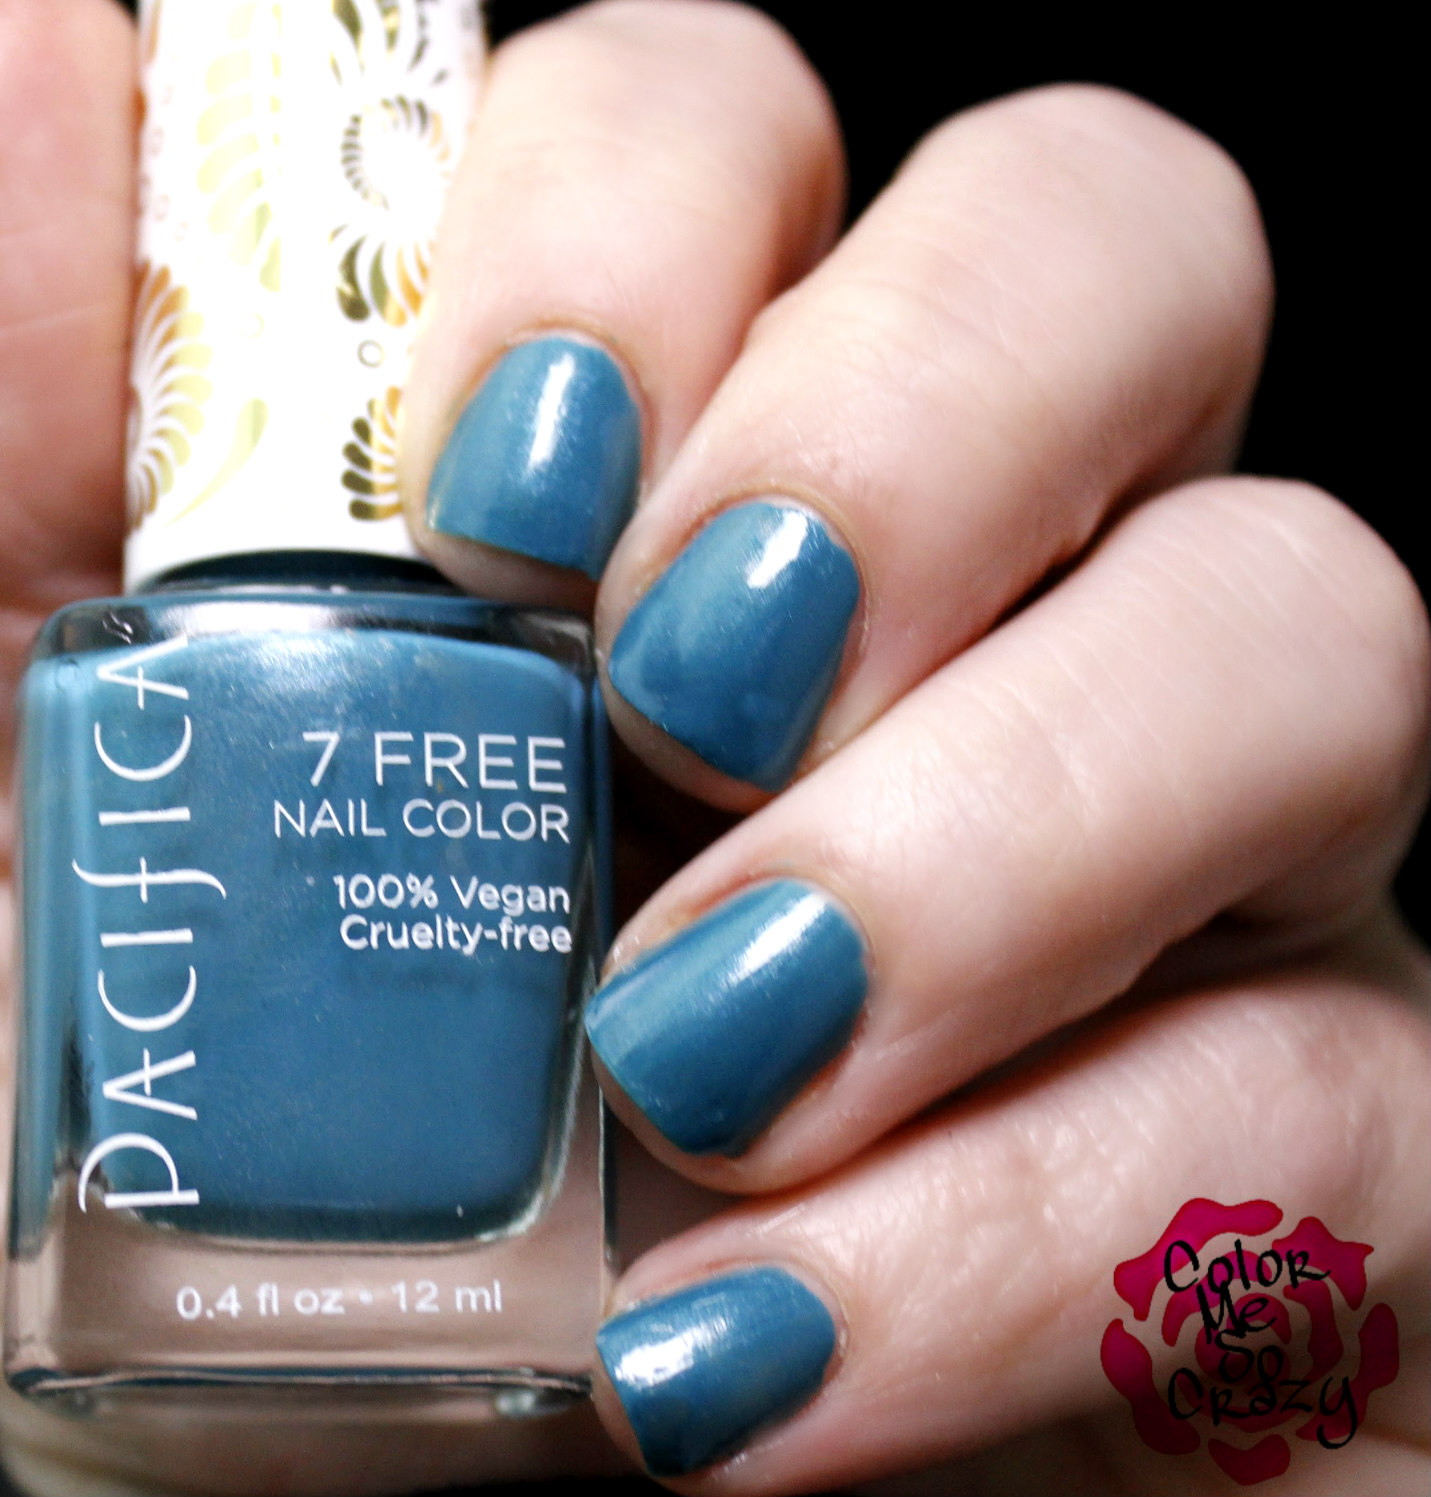 Pacifica 7 Free Nail Color Trio...Yes I Said 7 FREE!